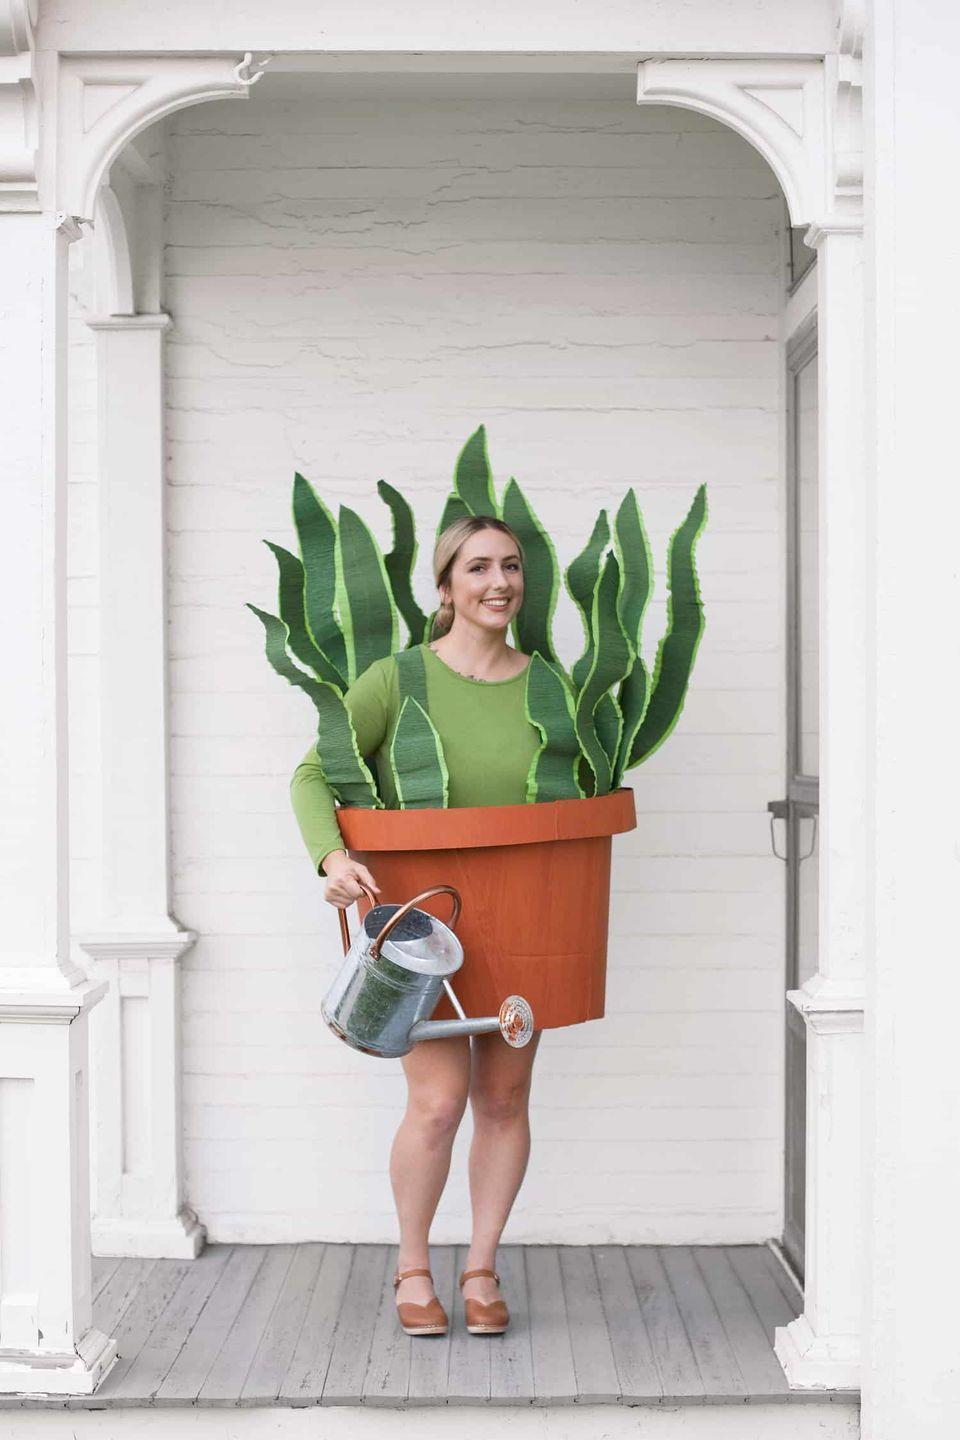 """<p>Think this costume's too difficult to DIY? Think again: It's made using an old Amazon Prime box and a round laundry basket.</p><p><strong>Get the tutorial at <a href=""""https://abeautifulmess.com/2018/10/diy-houseplant-boxtume.html"""" rel=""""nofollow noopener"""" target=""""_blank"""" data-ylk=""""slk:A Beautiful Mess"""" class=""""link rapid-noclick-resp"""">A Beautiful Mess</a>.</strong></p><p><strong><a class=""""link rapid-noclick-resp"""" href=""""https://www.amazon.com/Like-SCB-1-14-76-Inch-16-14-Inch-14-57-Inch/dp/B002GCL2V6?tag=syn-yahoo-20&ascsubtag=%5Bartid%7C10050.g.4571%5Bsrc%7Cyahoo-us"""" rel=""""nofollow noopener"""" target=""""_blank"""" data-ylk=""""slk:SHOP LAUNDRY BASKETS"""">SHOP LAUNDRY BASKETS</a><br></strong></p>"""